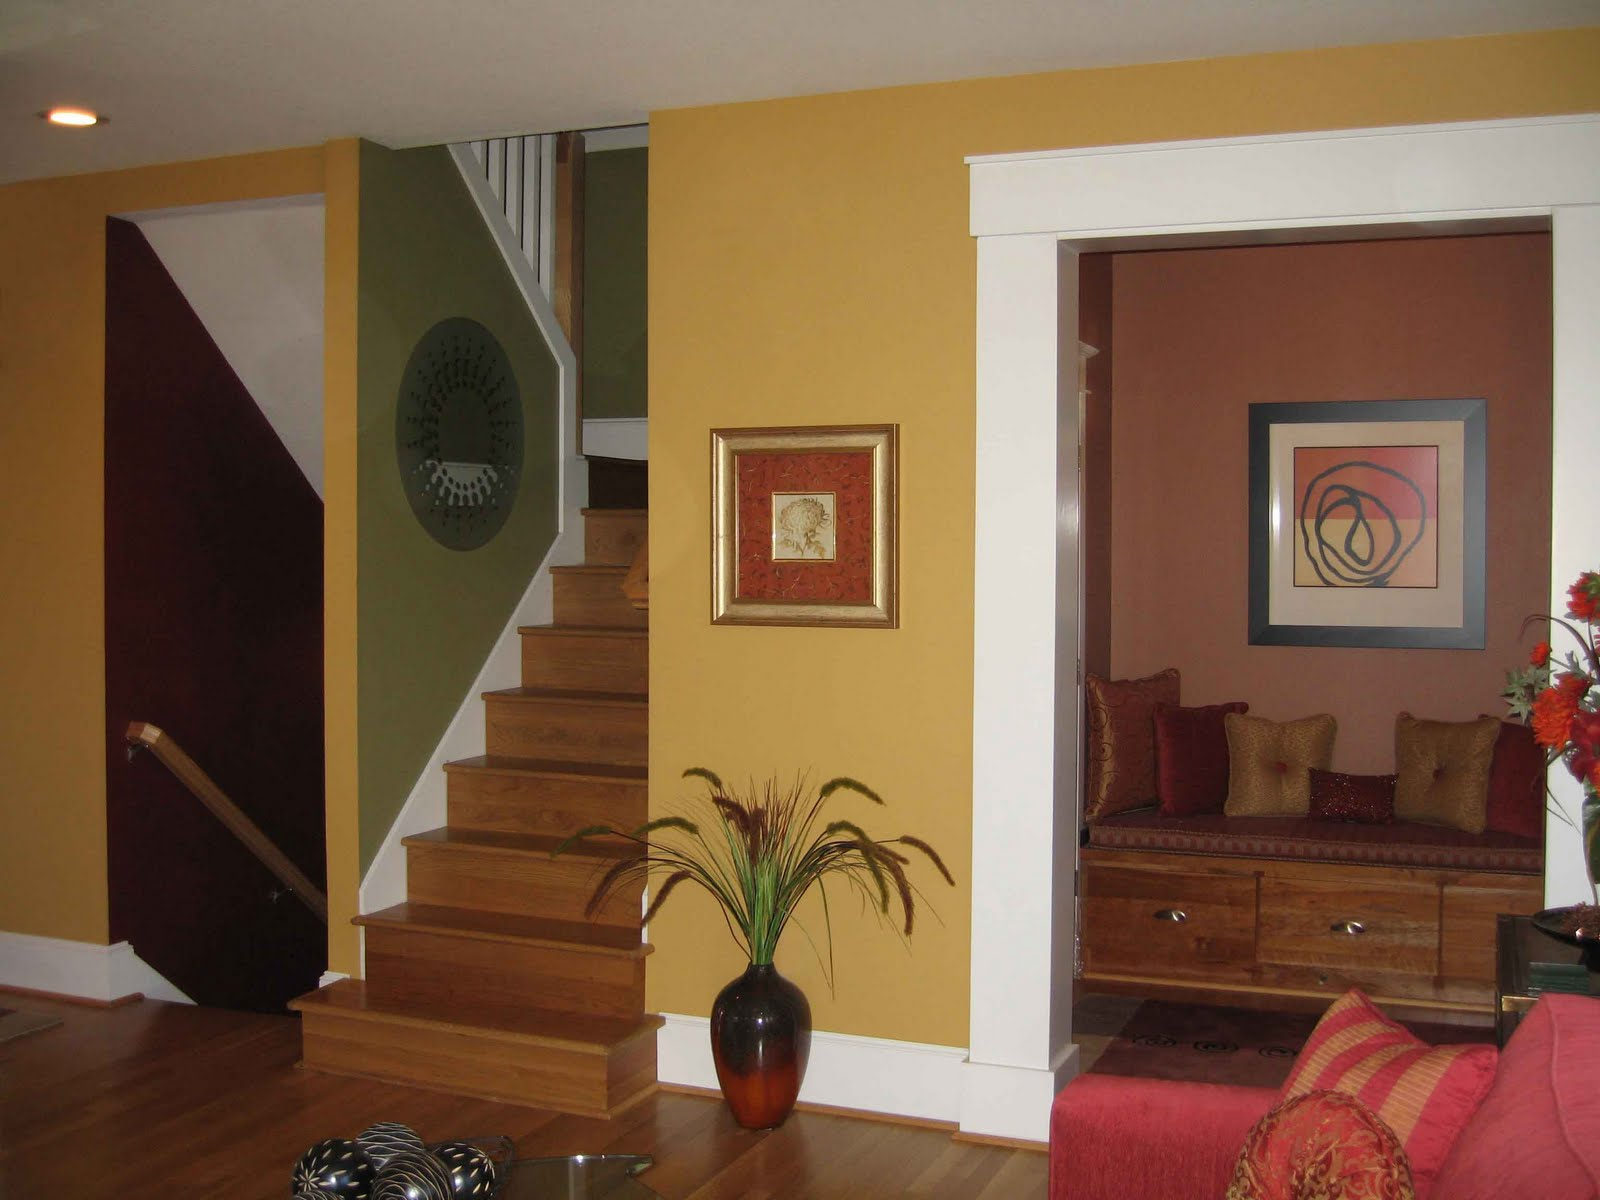 Interior spaces interior paint color specialist in for Paints for house interior photos